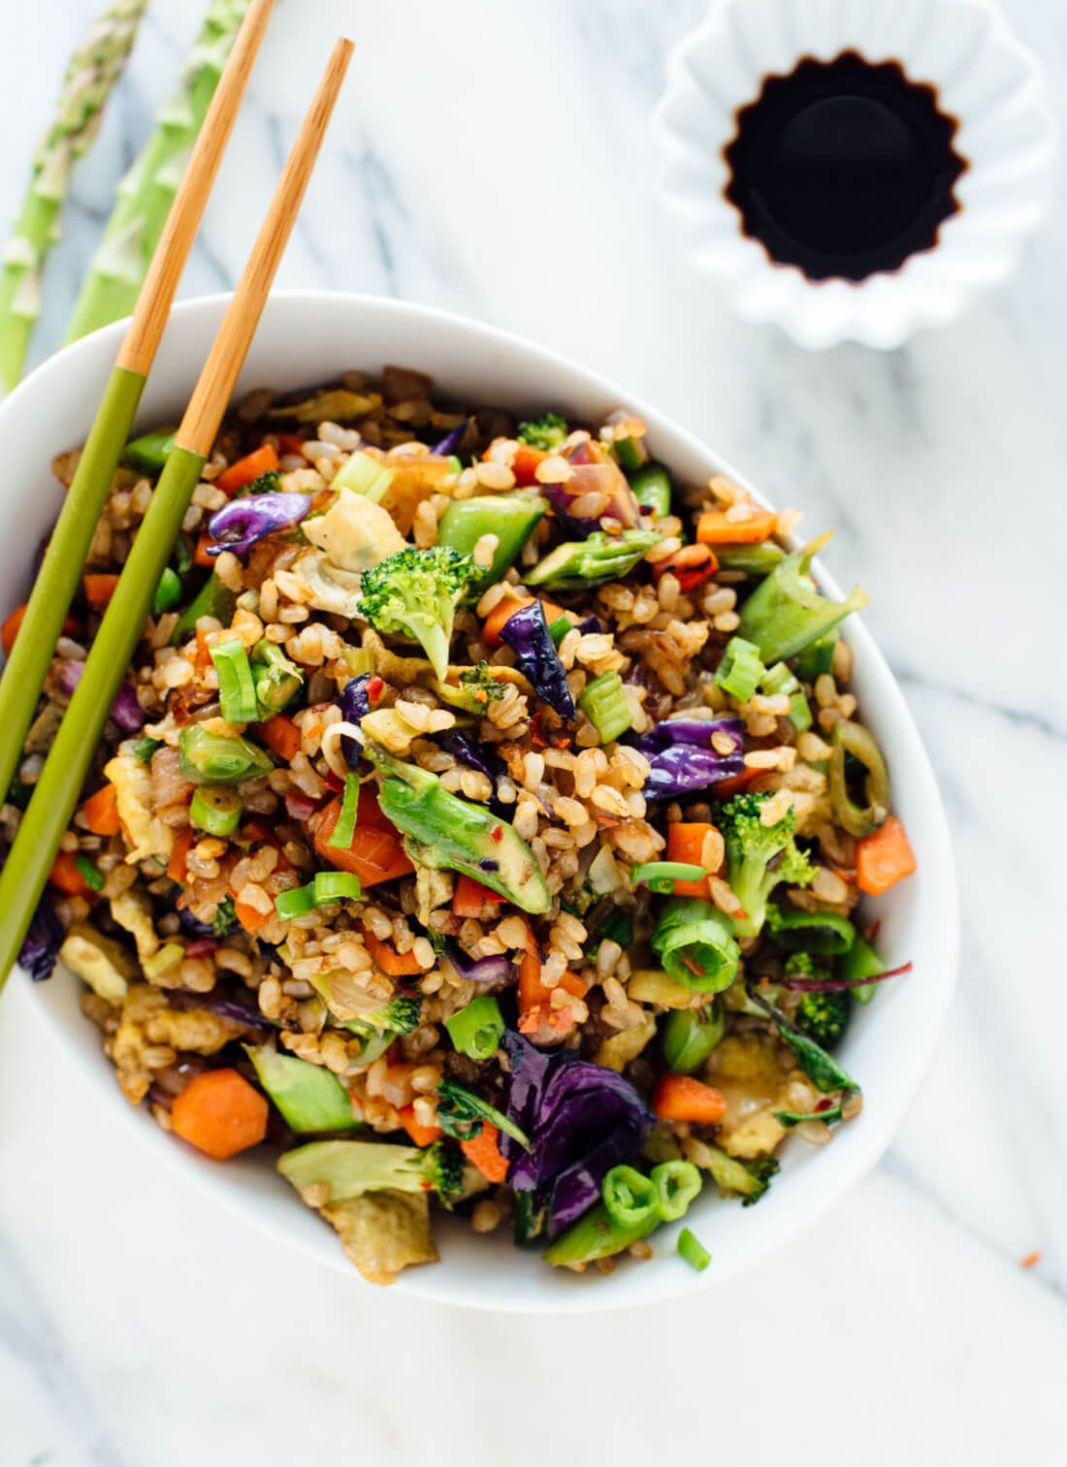 Extra Vegetable Fried Rice - Recipes Rice And Vegetables